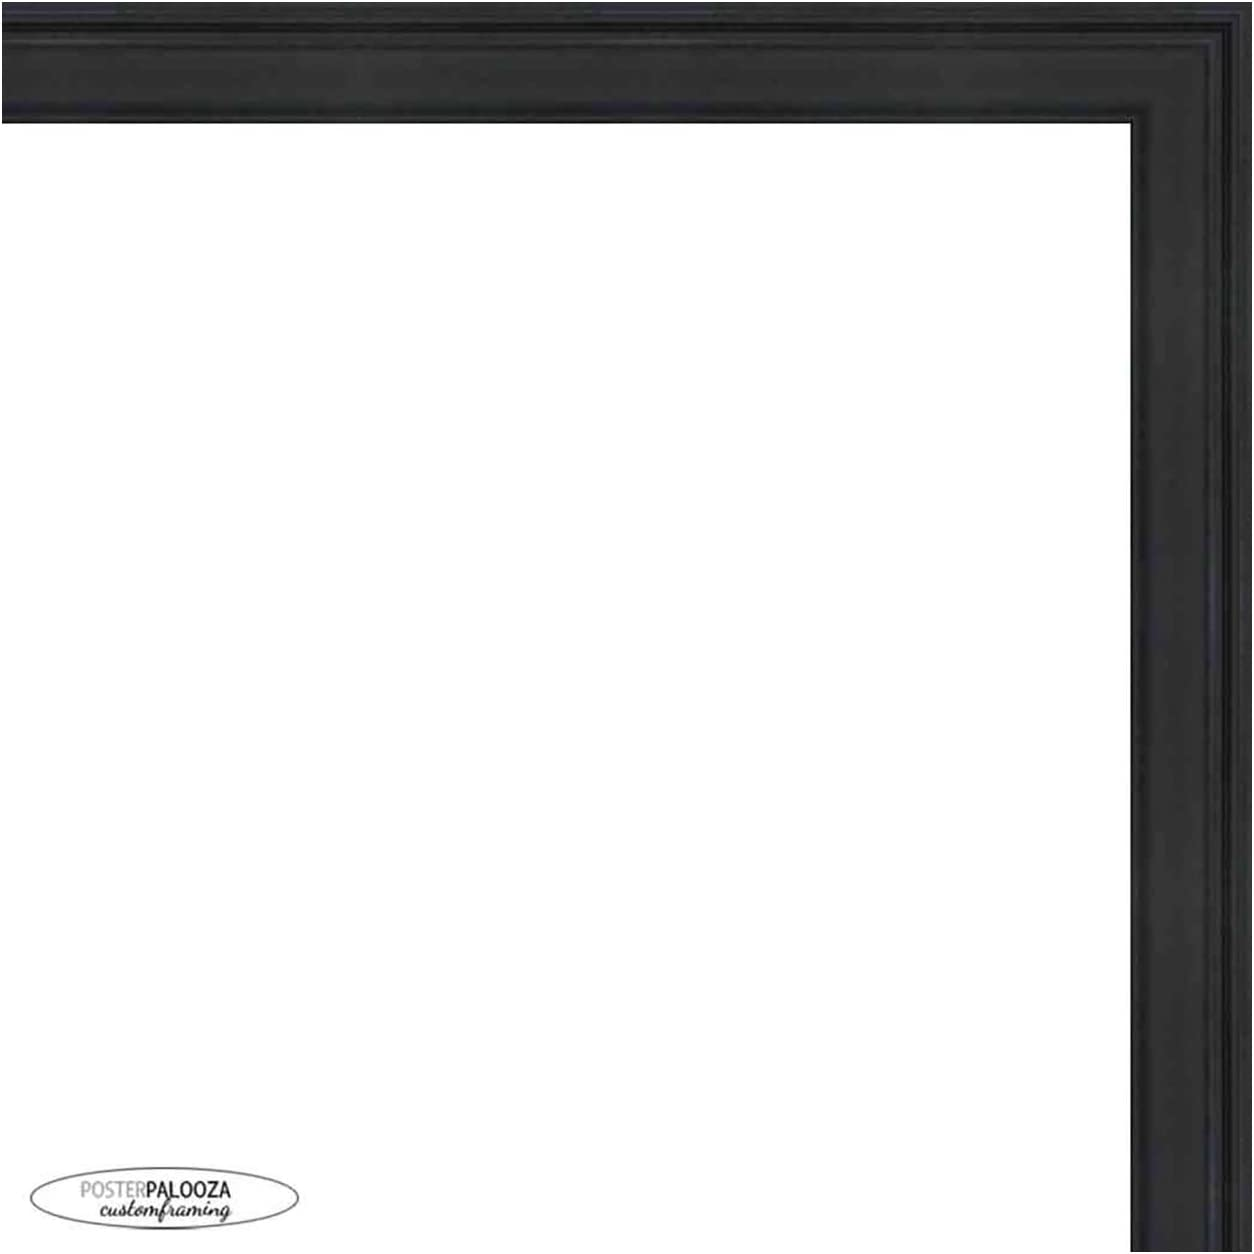 Poster Palooza 38x26 Traditional specialty shop 2021 model Black Wood Complete Fra Picture